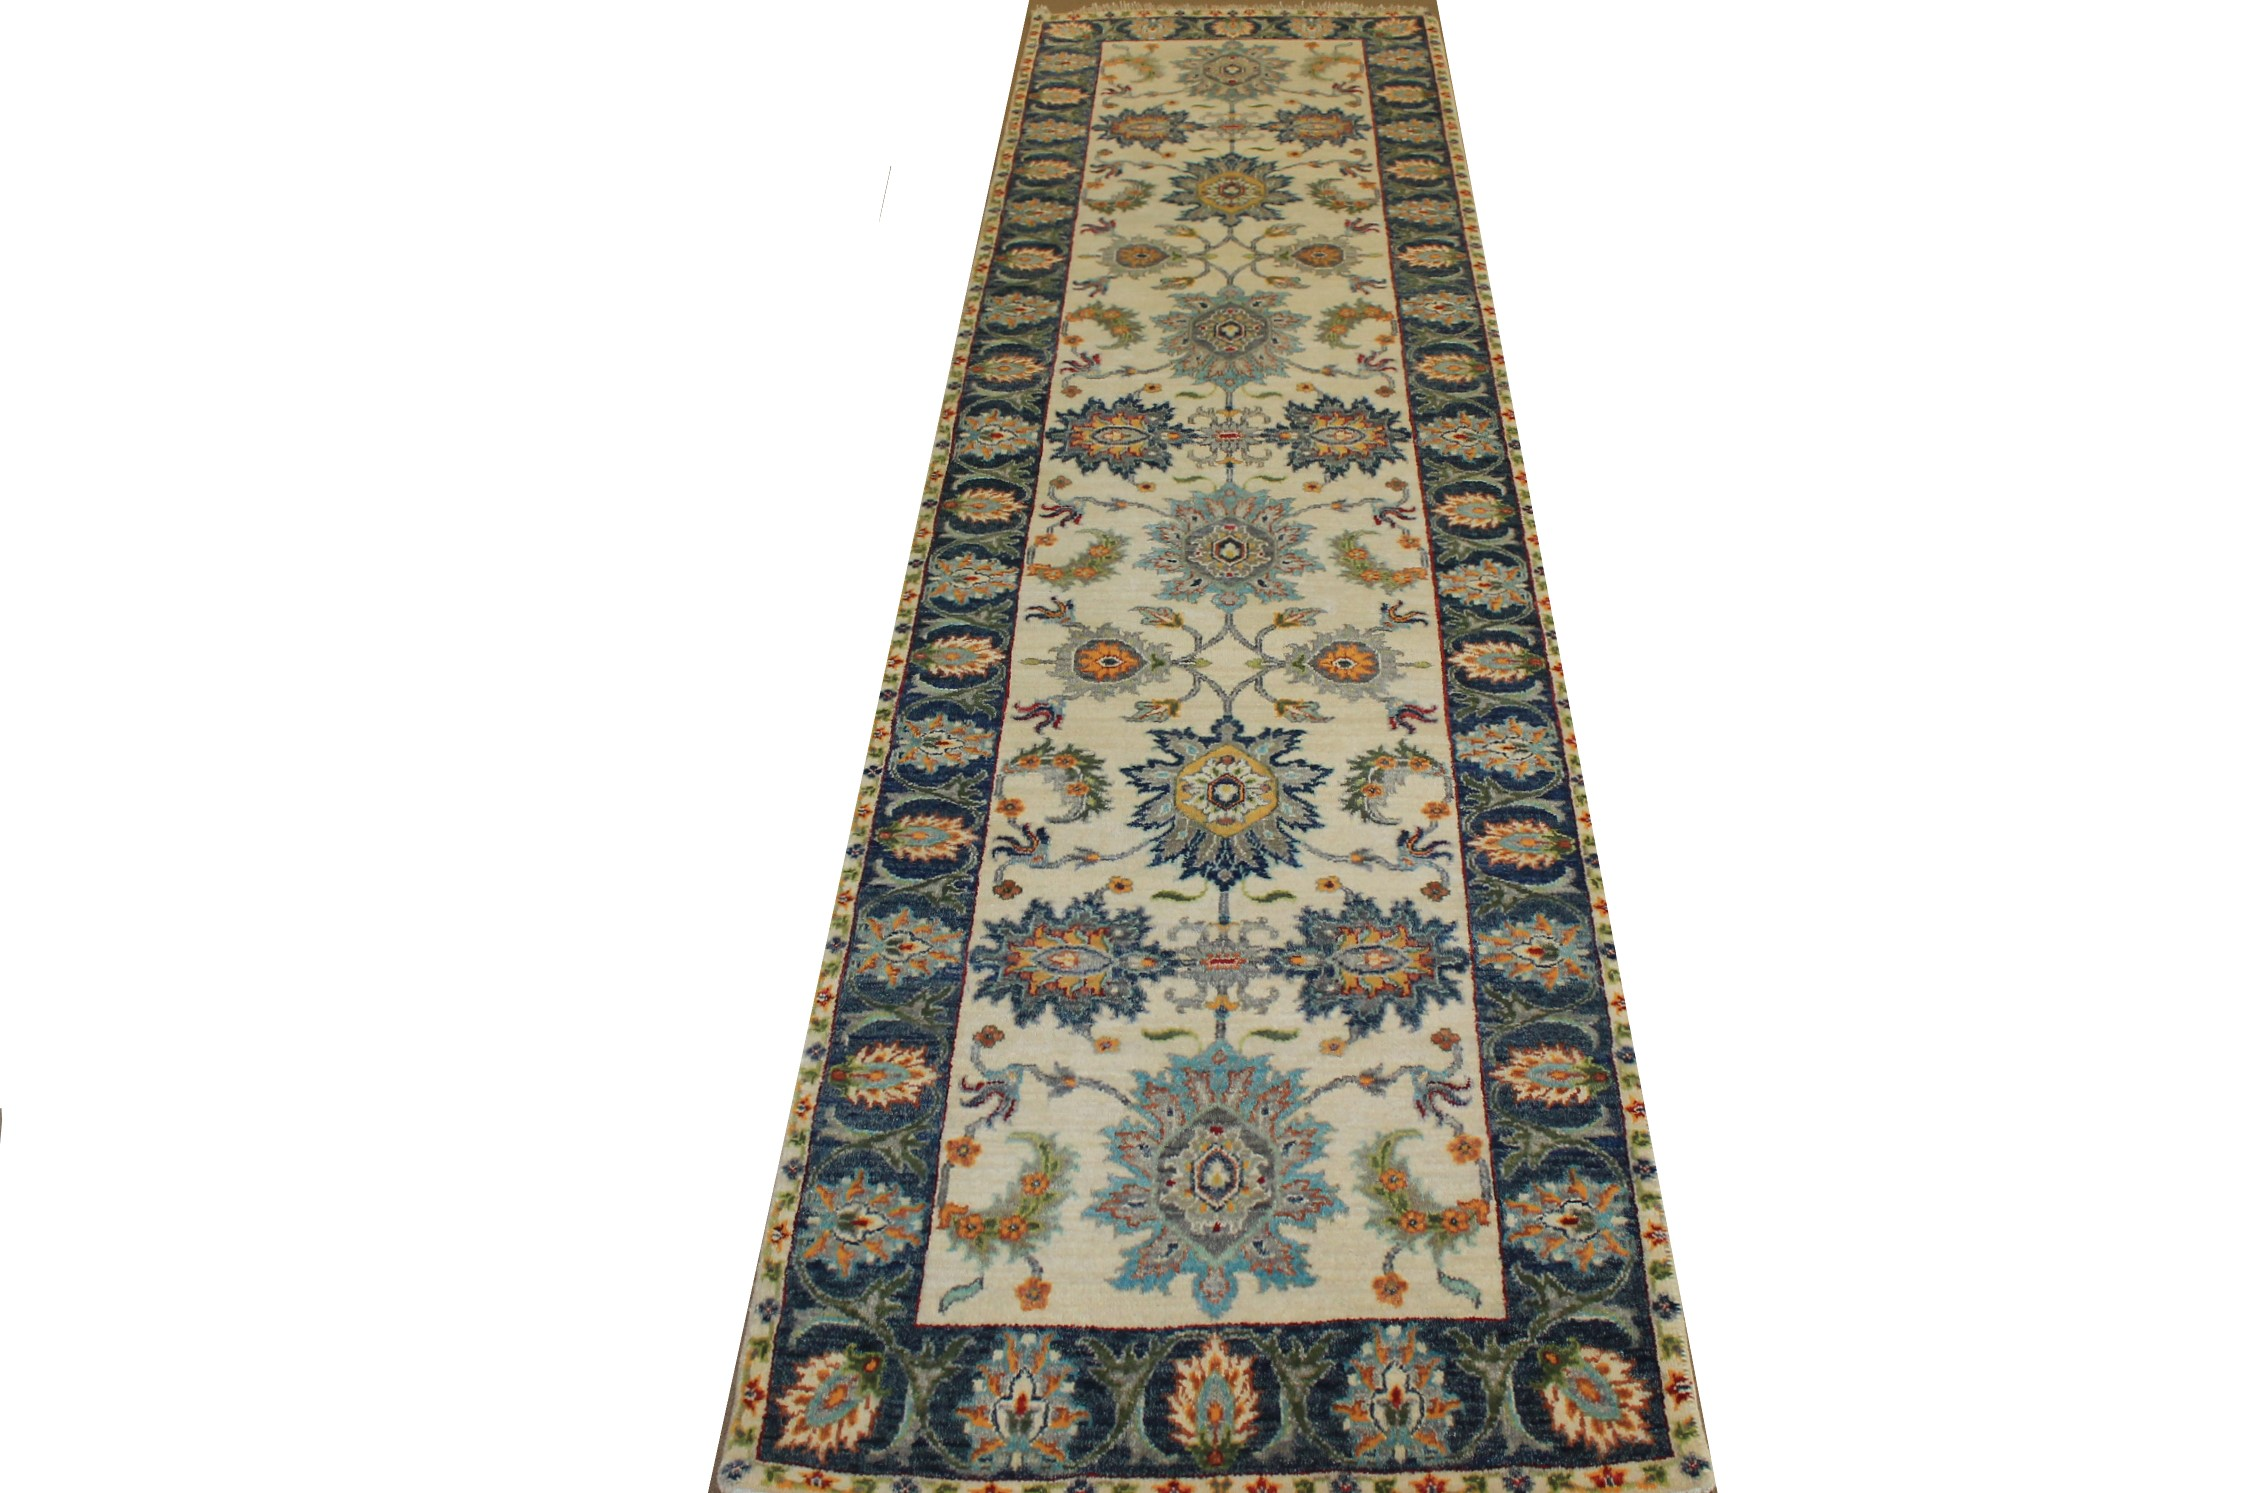 10 ft. Runner Traditional Hand Knotted Wool Area Rug - MR024166